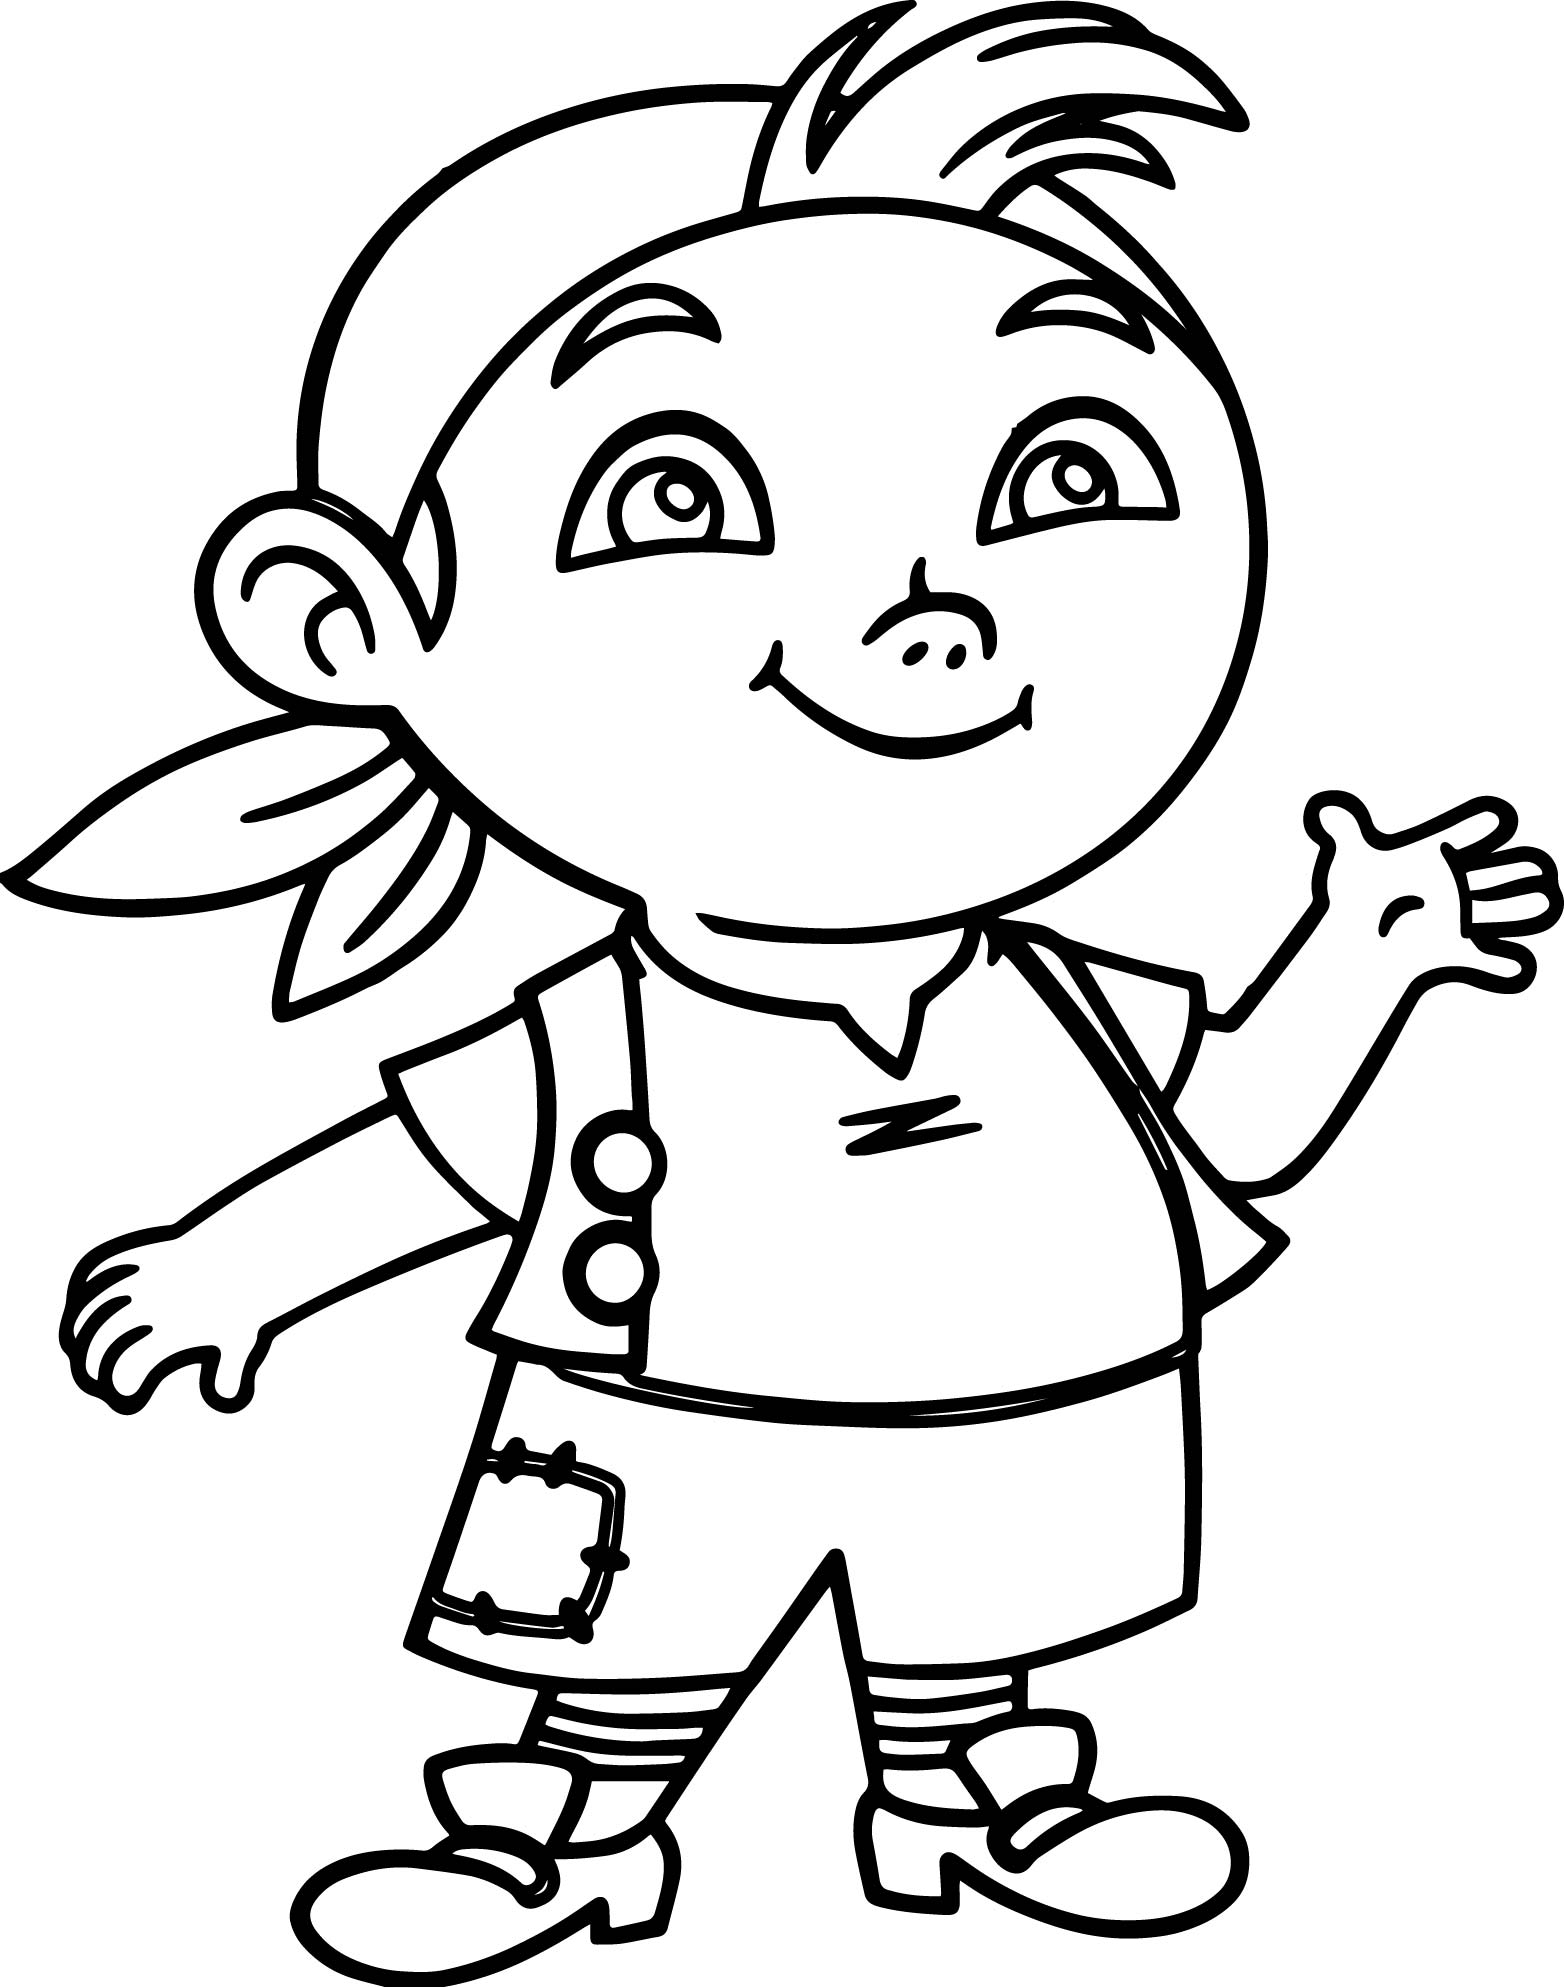 Jake and the never land pirates coloring page for Jake the pirate coloring pages